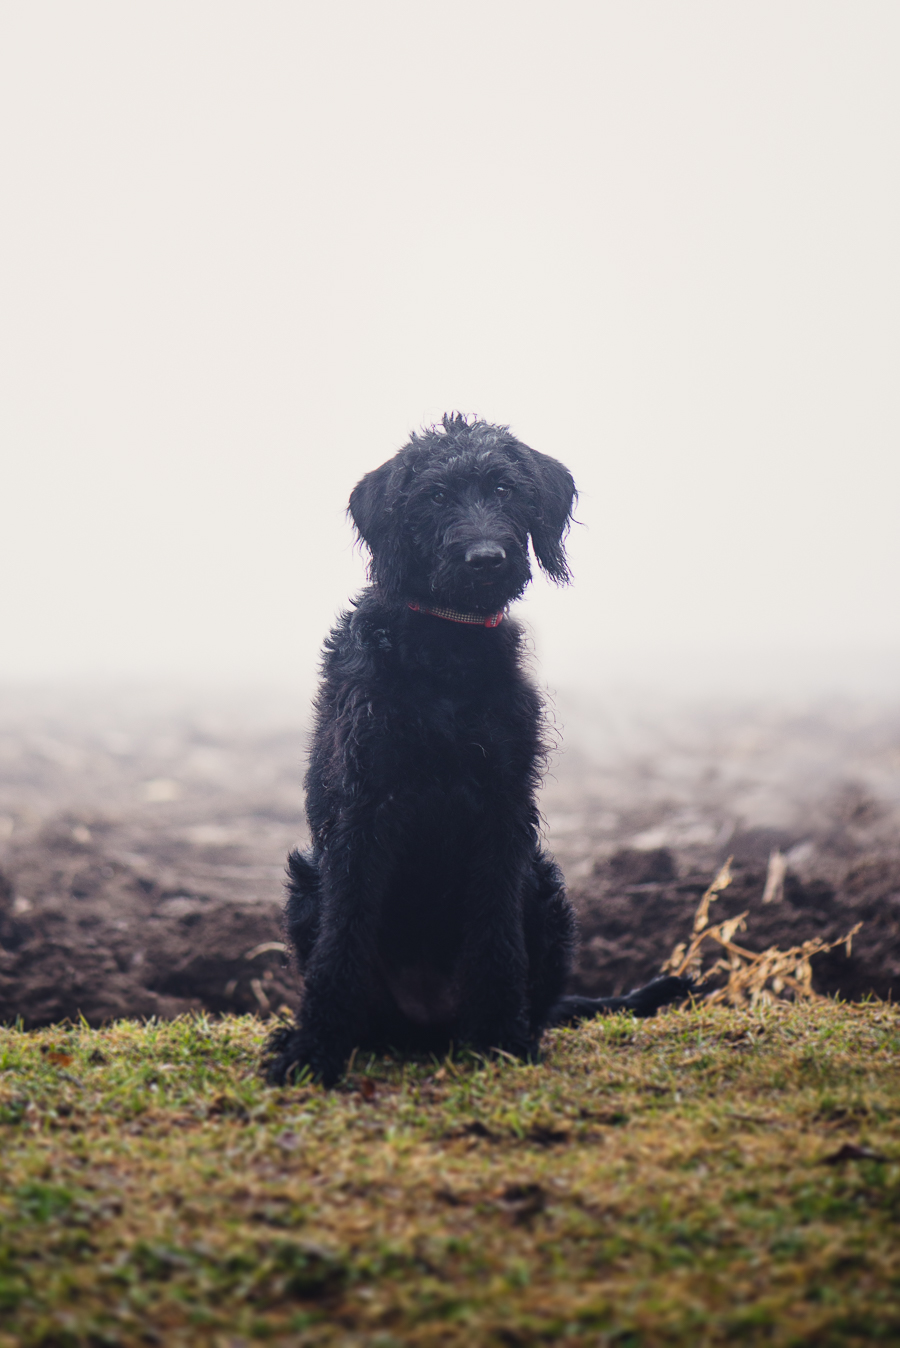 Disney The Black Labradoodle Puppy Alleycat Photography